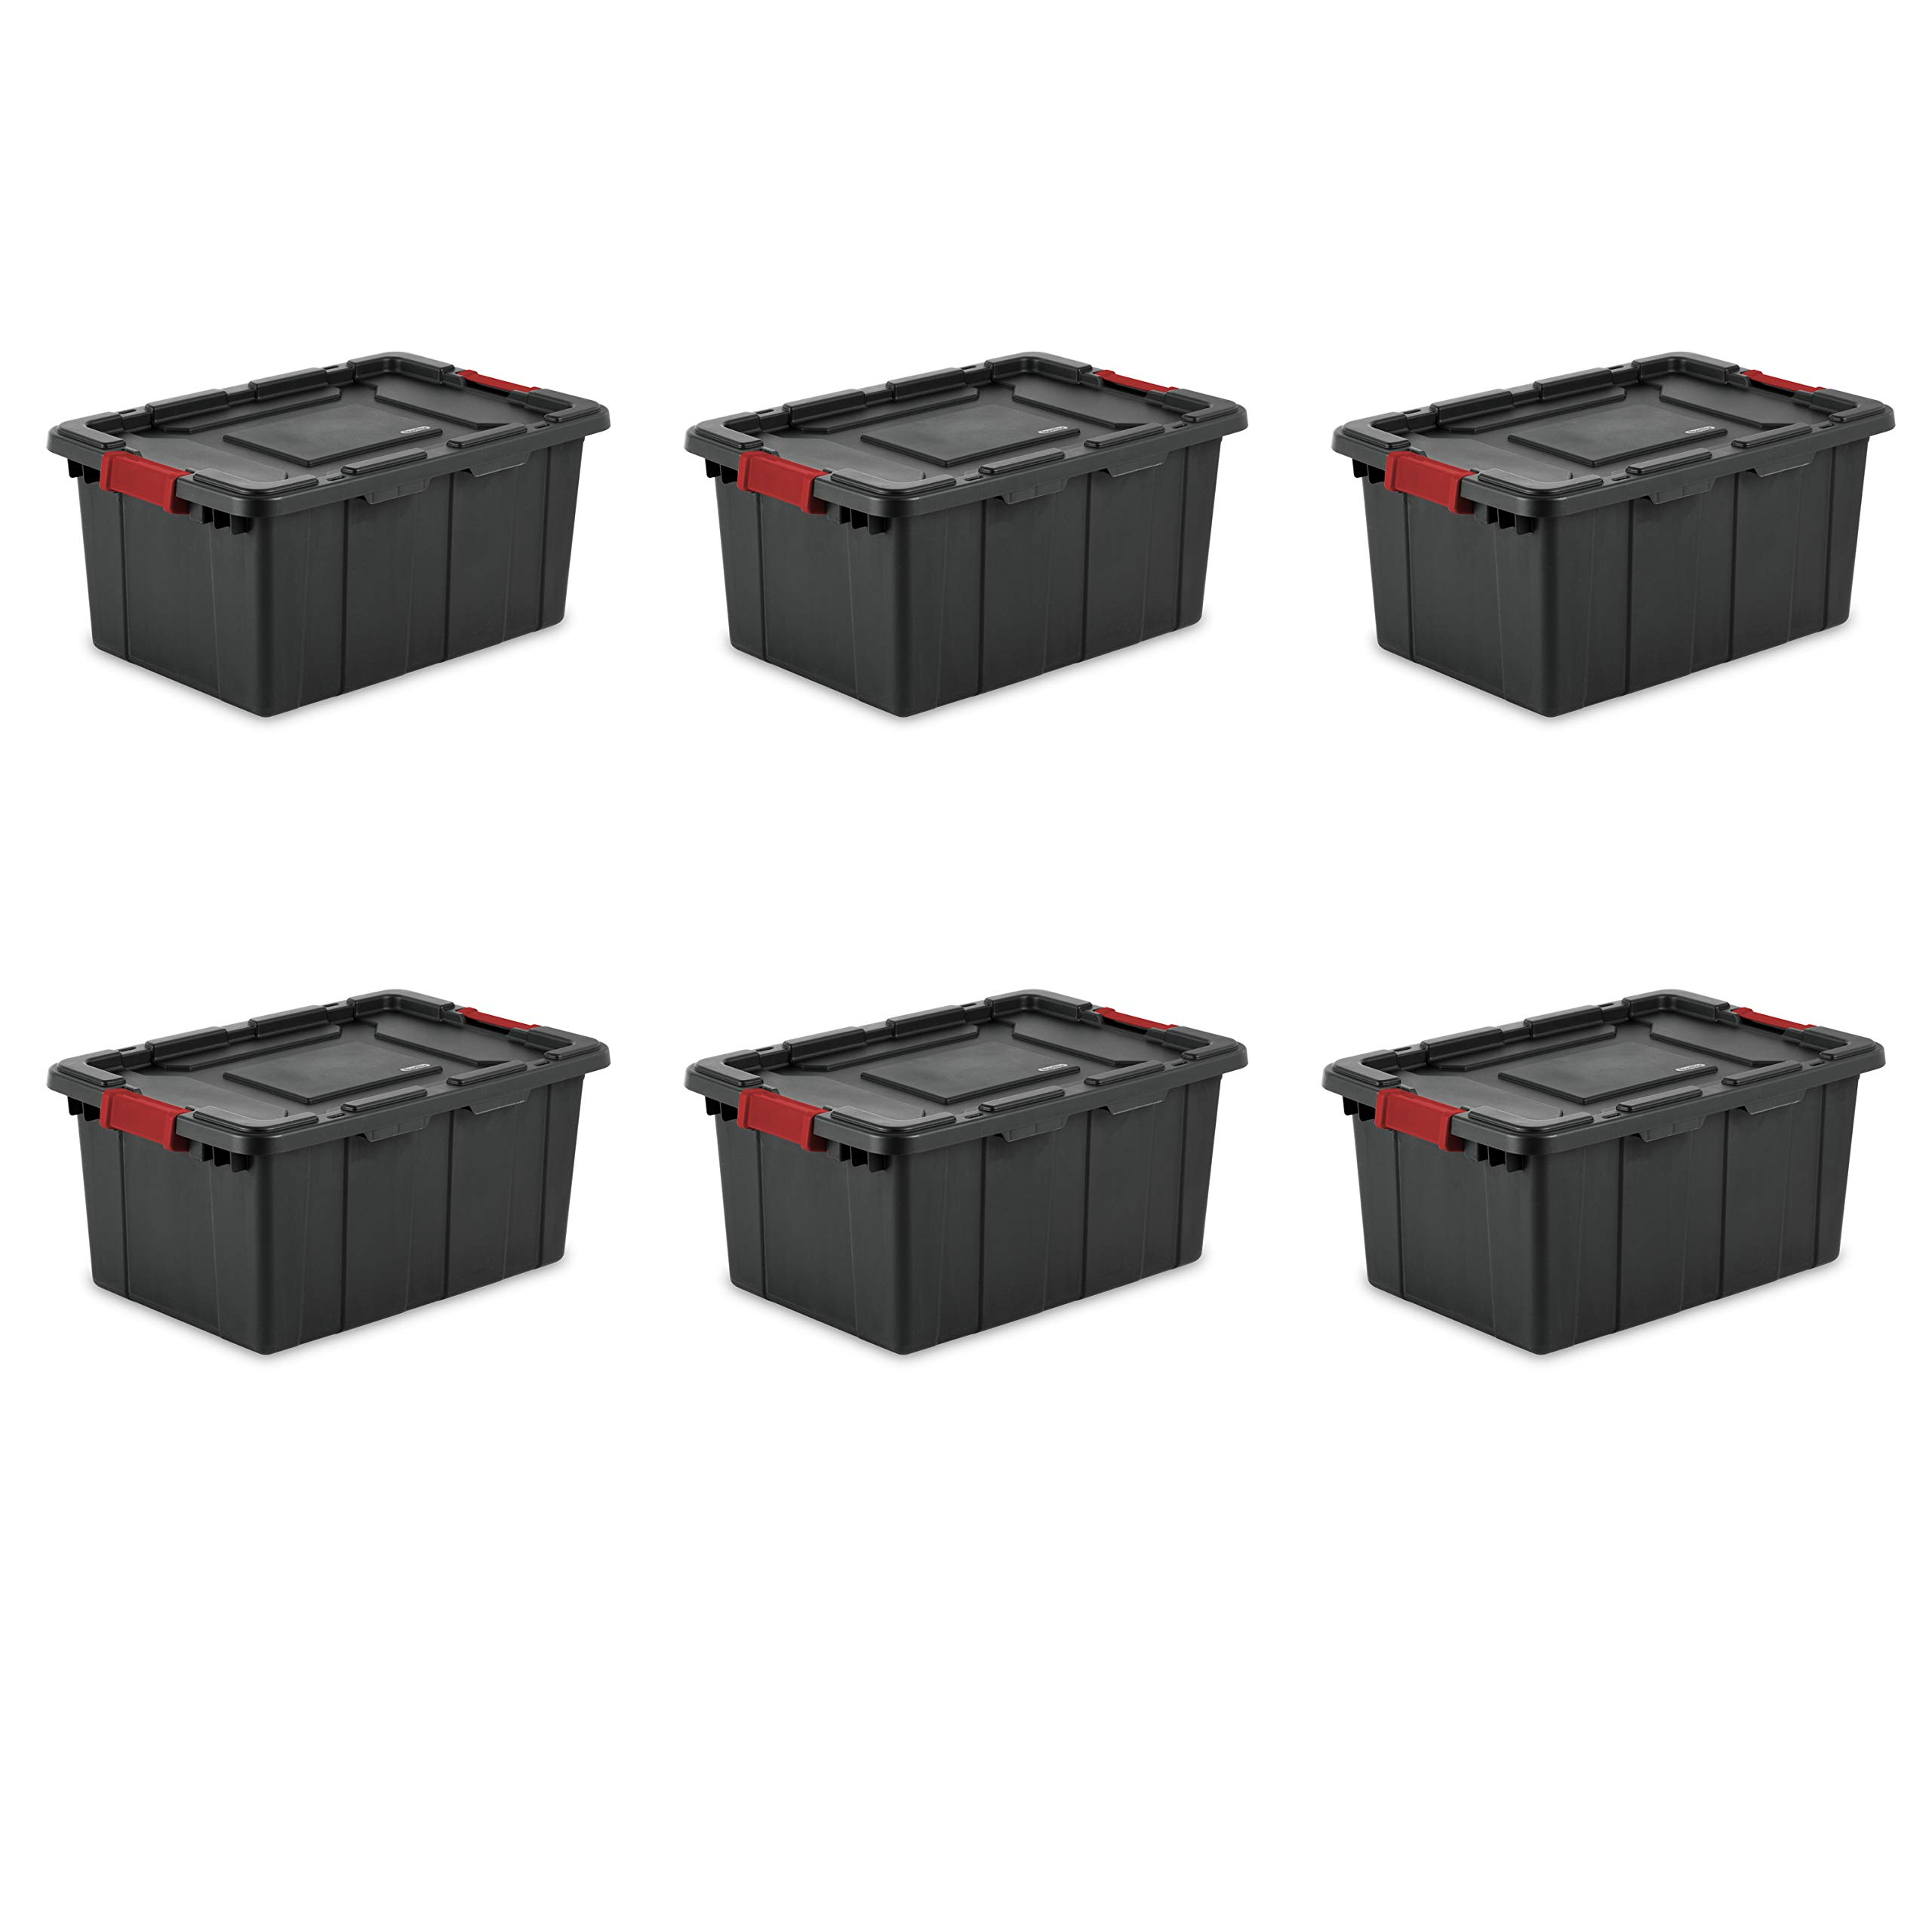 Sterilite 14649006 15 Gallon/57 Liter Industrial Tote, Black Lid & Base w/ Racer Red Latches, 6-Pack by STERILITE